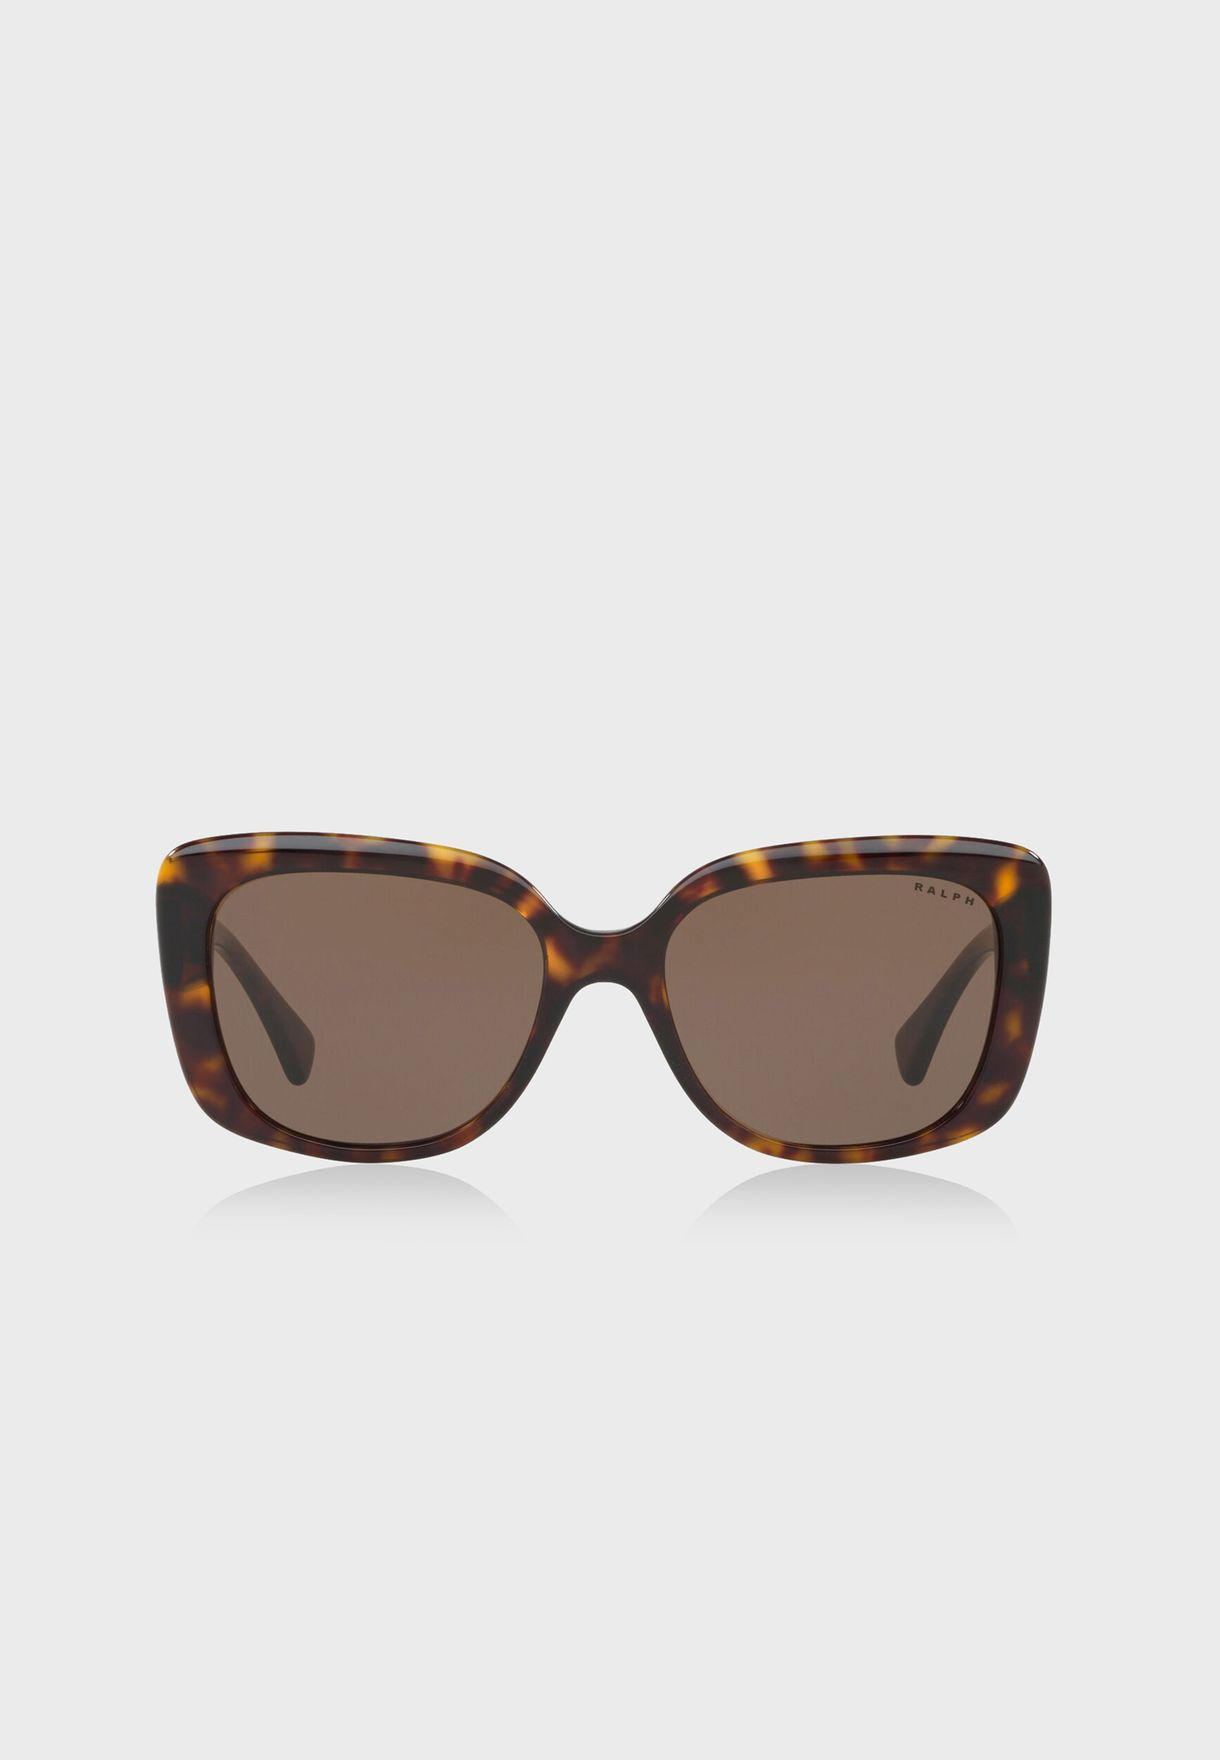 0RA5241 Butterfly Sunglasses